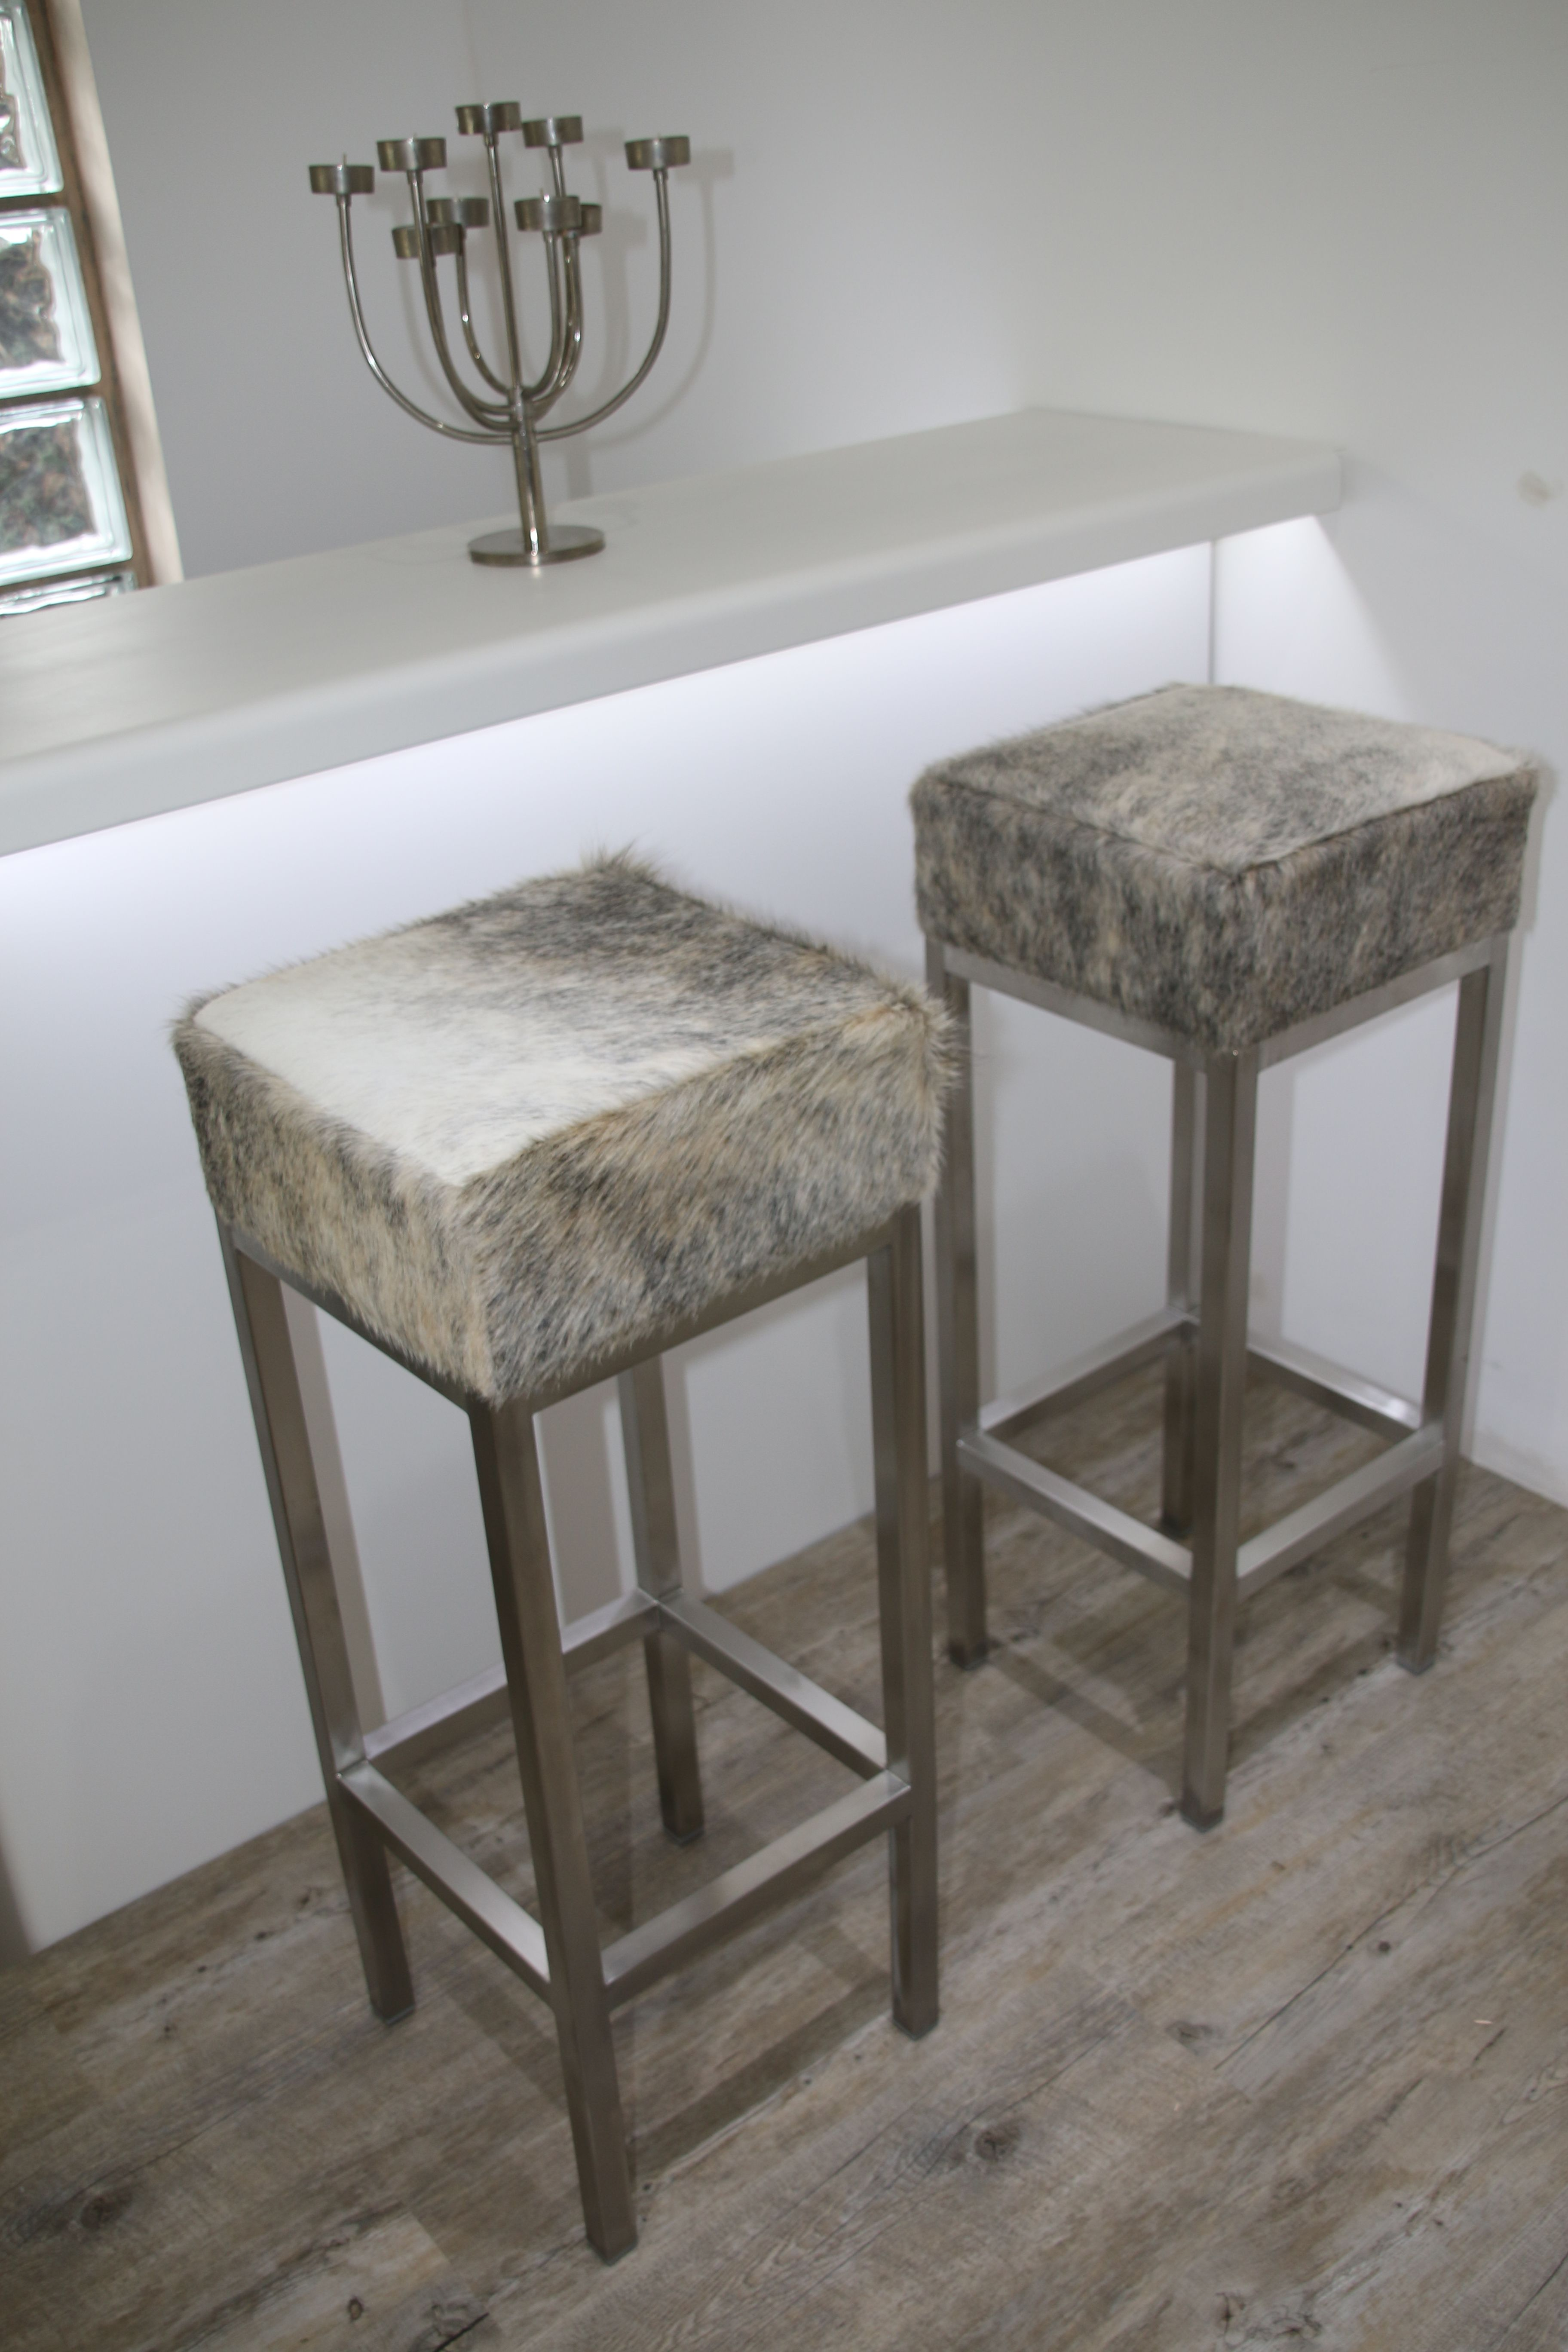 Grey And White Cowhide Bar Stools With Stainless Steel Frames Cowhide Bar Stools Bar Stools Home Decor